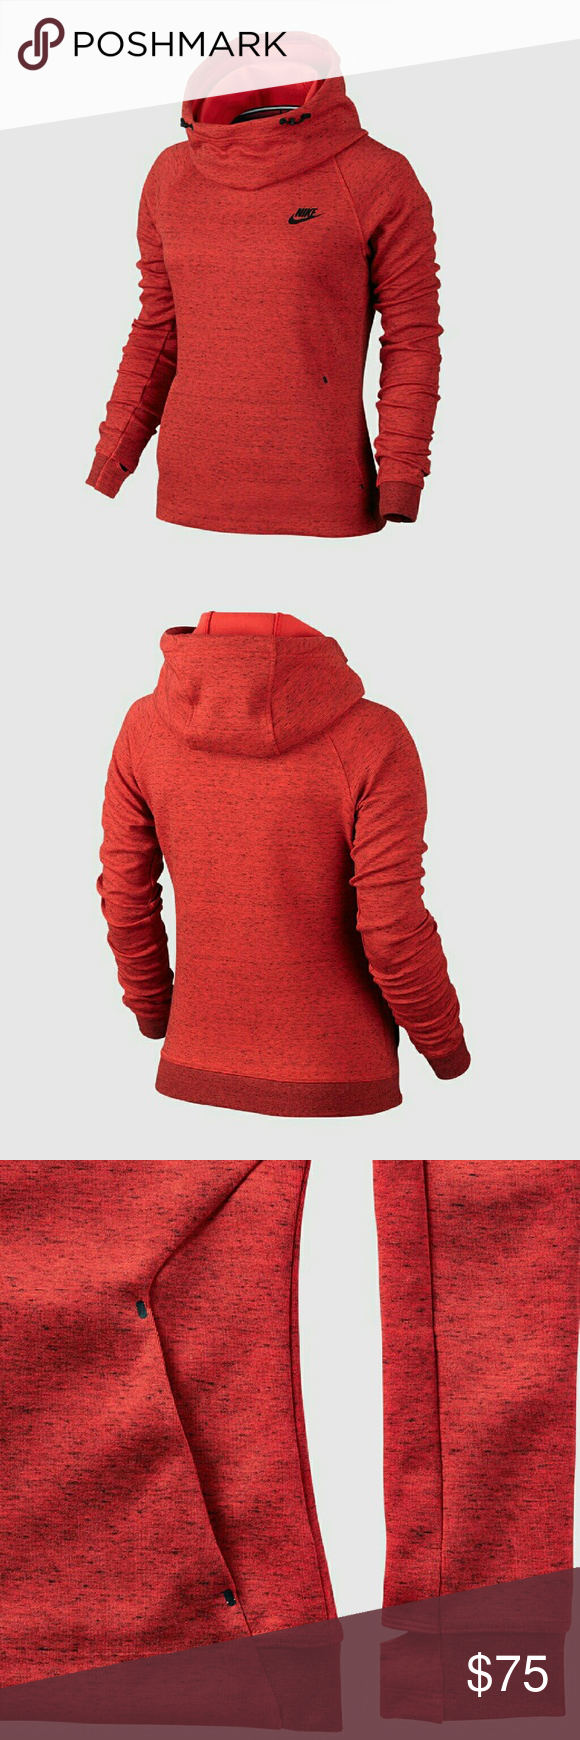 NEW Nike Tech Fleece Pullover NWT (With images) Nike